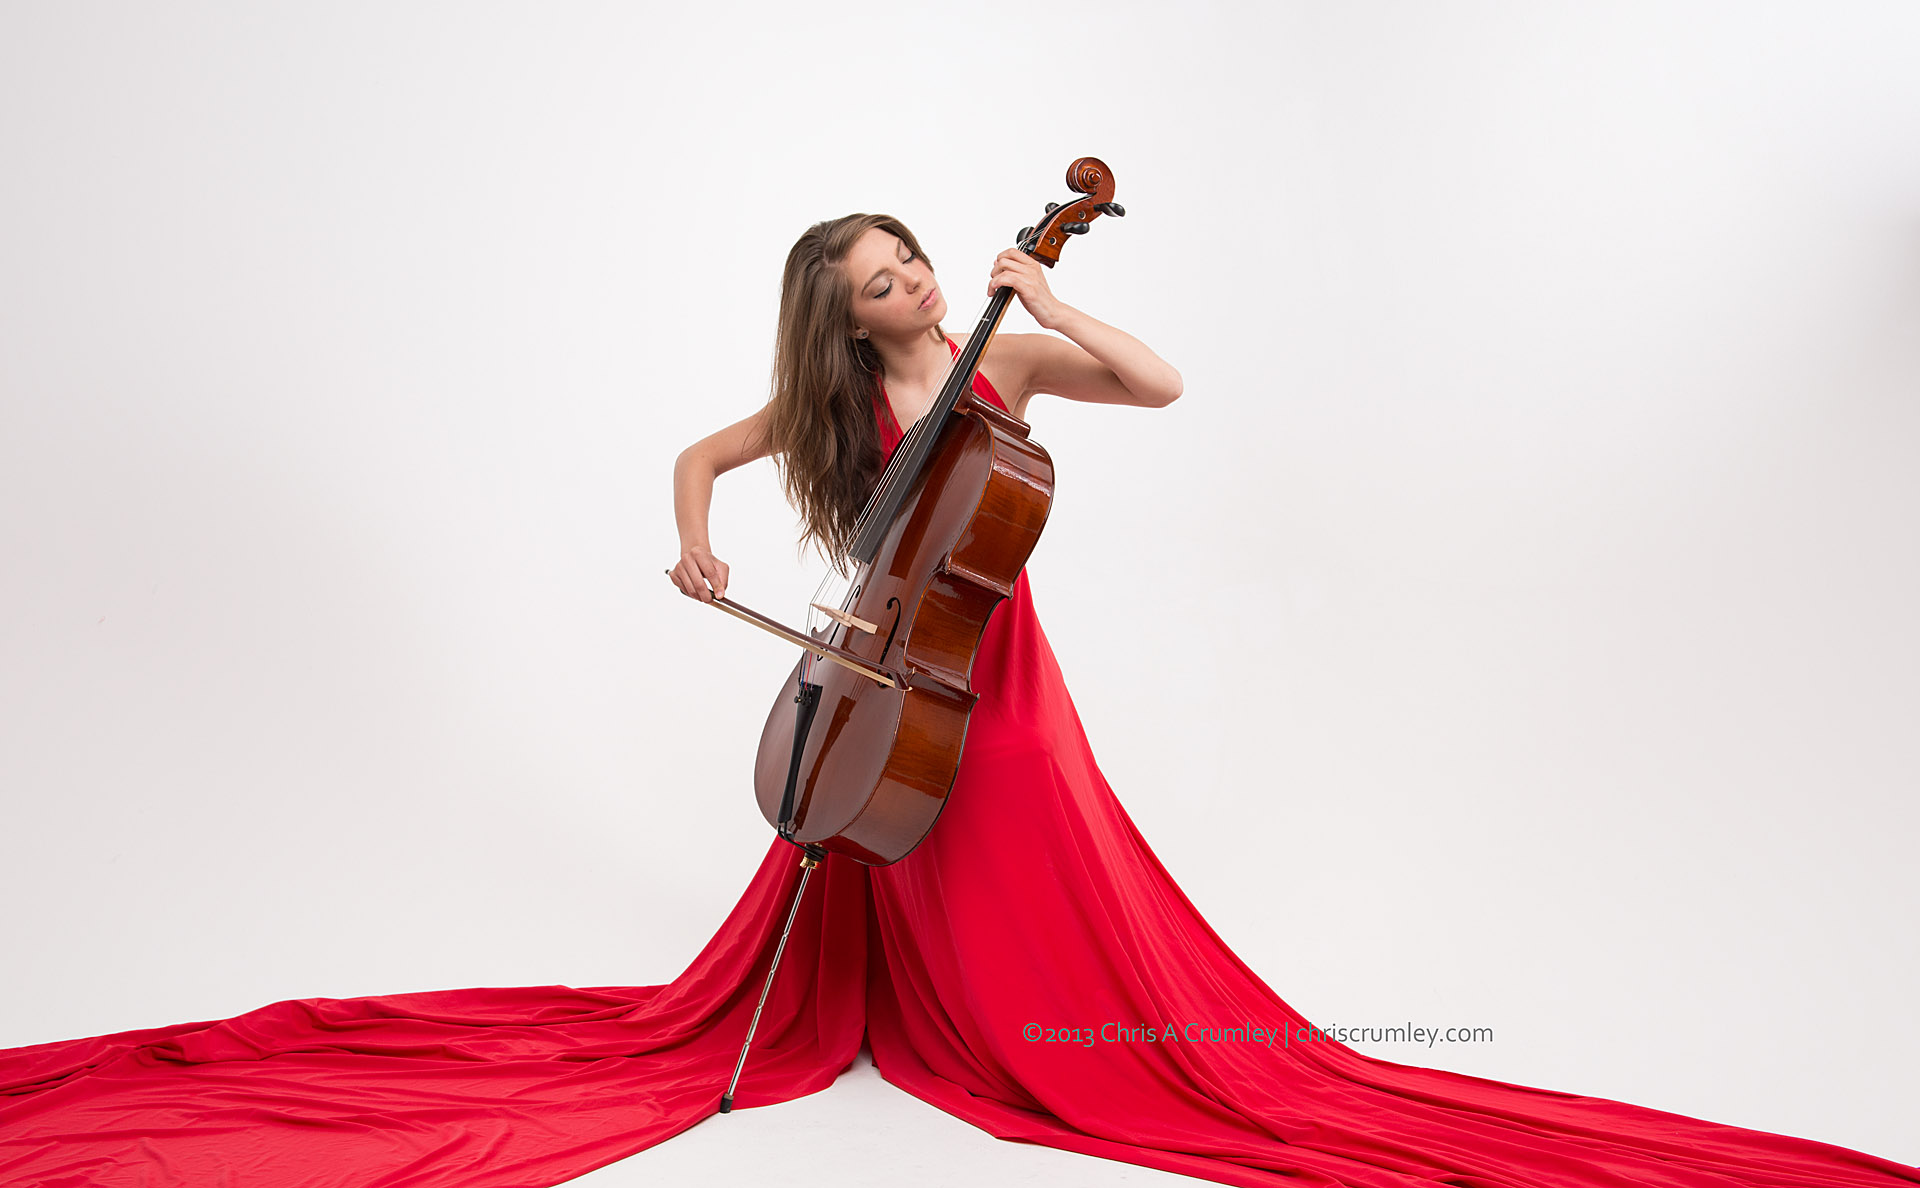 Cello and the Red Dress